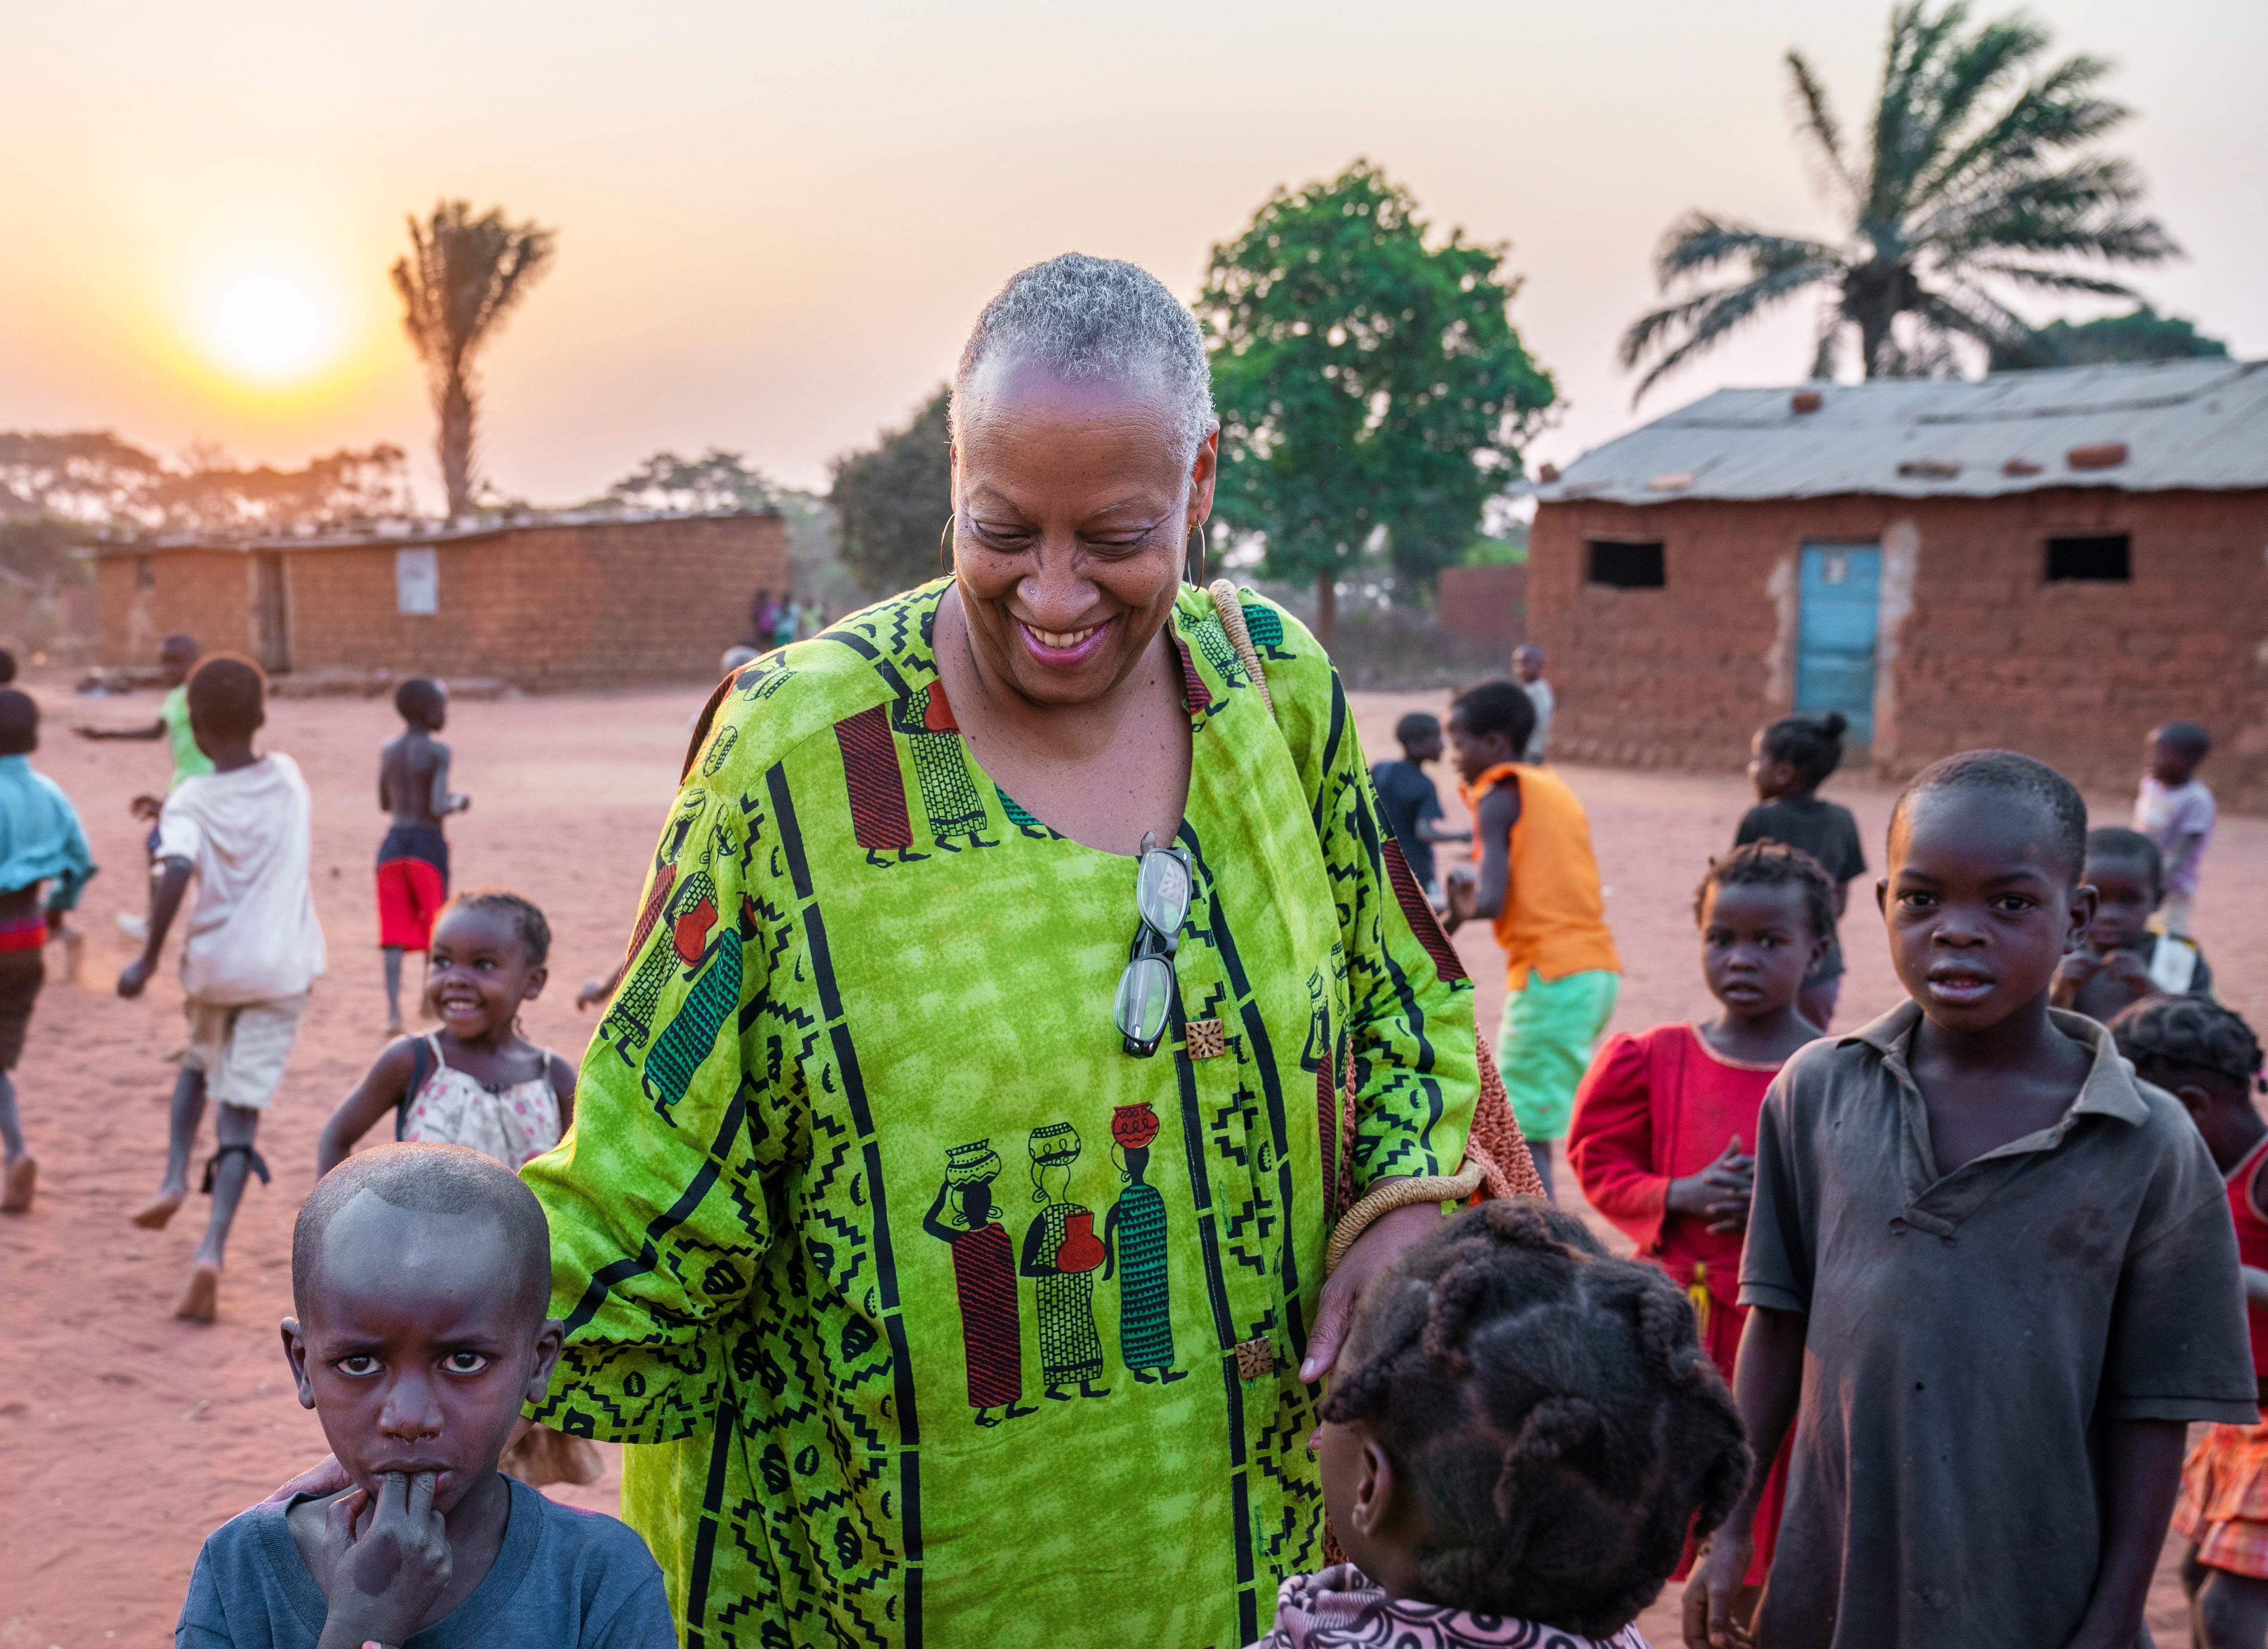 Children flocked to Wanda Tucker in a village in Kalandula, Angola, more than 200 miles east of the capital of Luanda. The village welcomed Wanda like a lost relative. Wanda believes her ancestors came from the Ndongo kingdom, whose descendants still live in approximately this part of Angola.